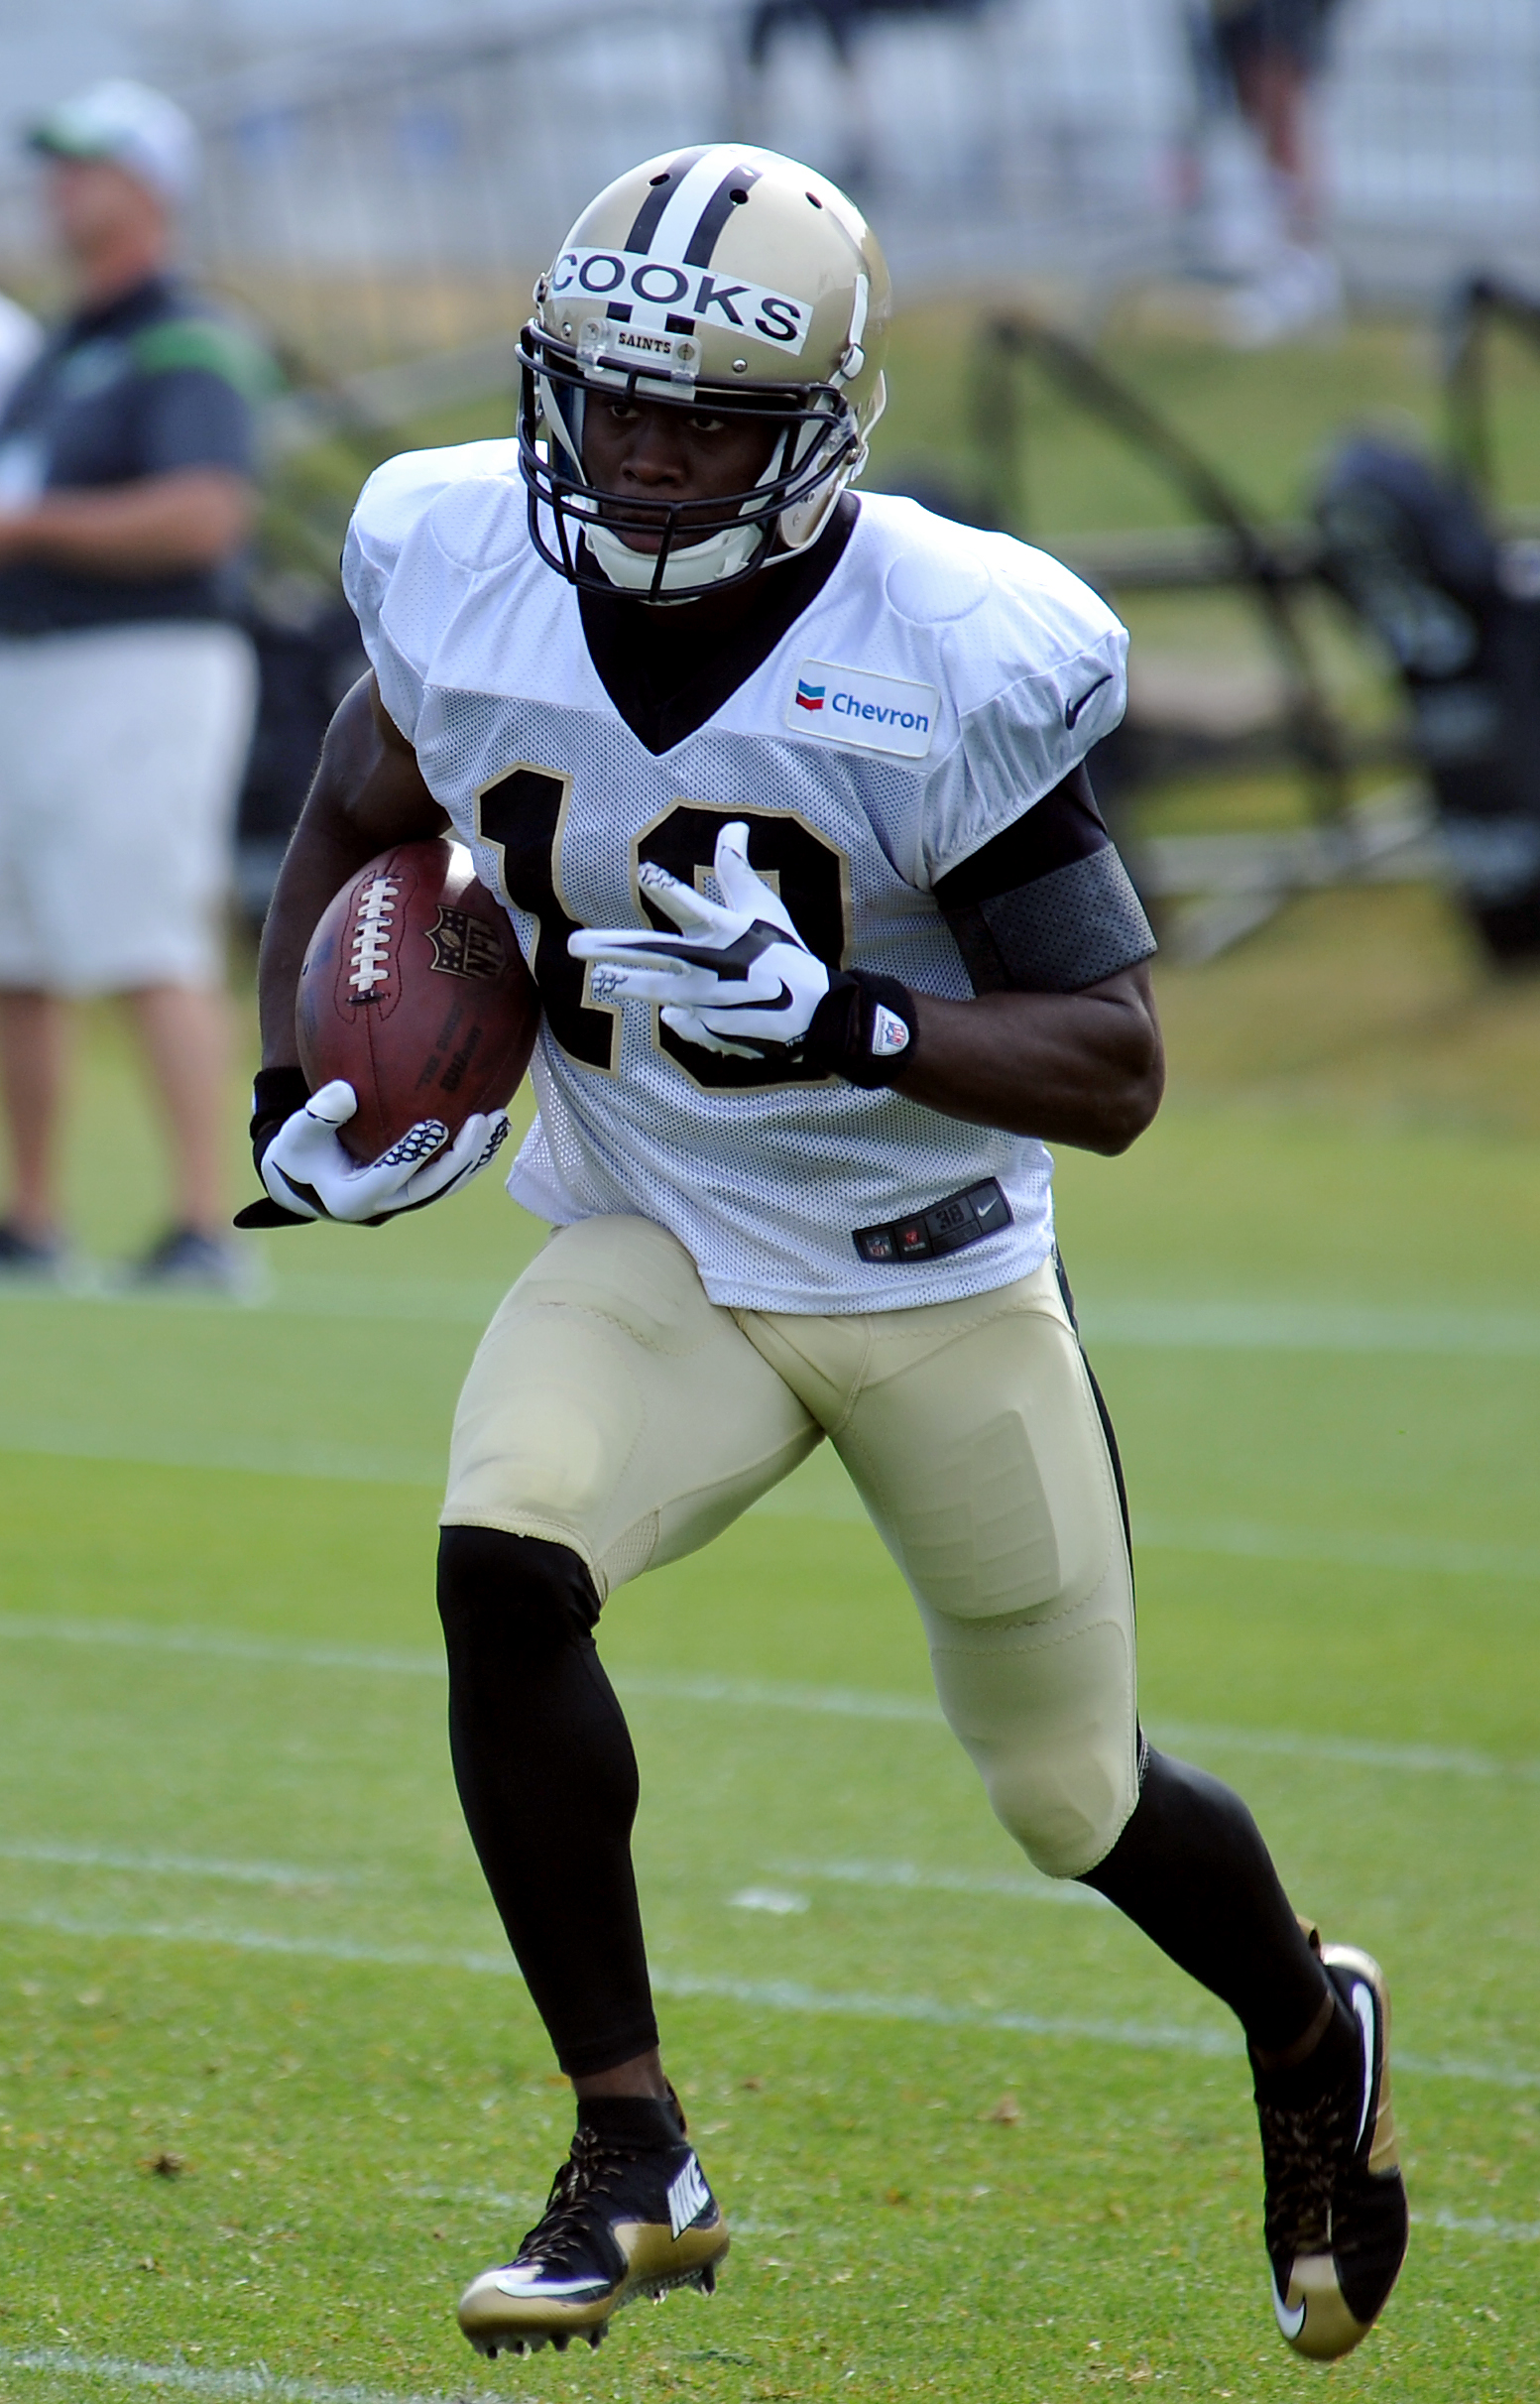 New Orleans Saints wide receiver Brandin Cooks (10) runs the ball during the teams NFL football training camp in White Sulphur Springs, W. Va., Sunday, Aug. 2, 2015. (AP Photo/Chris Tilley)